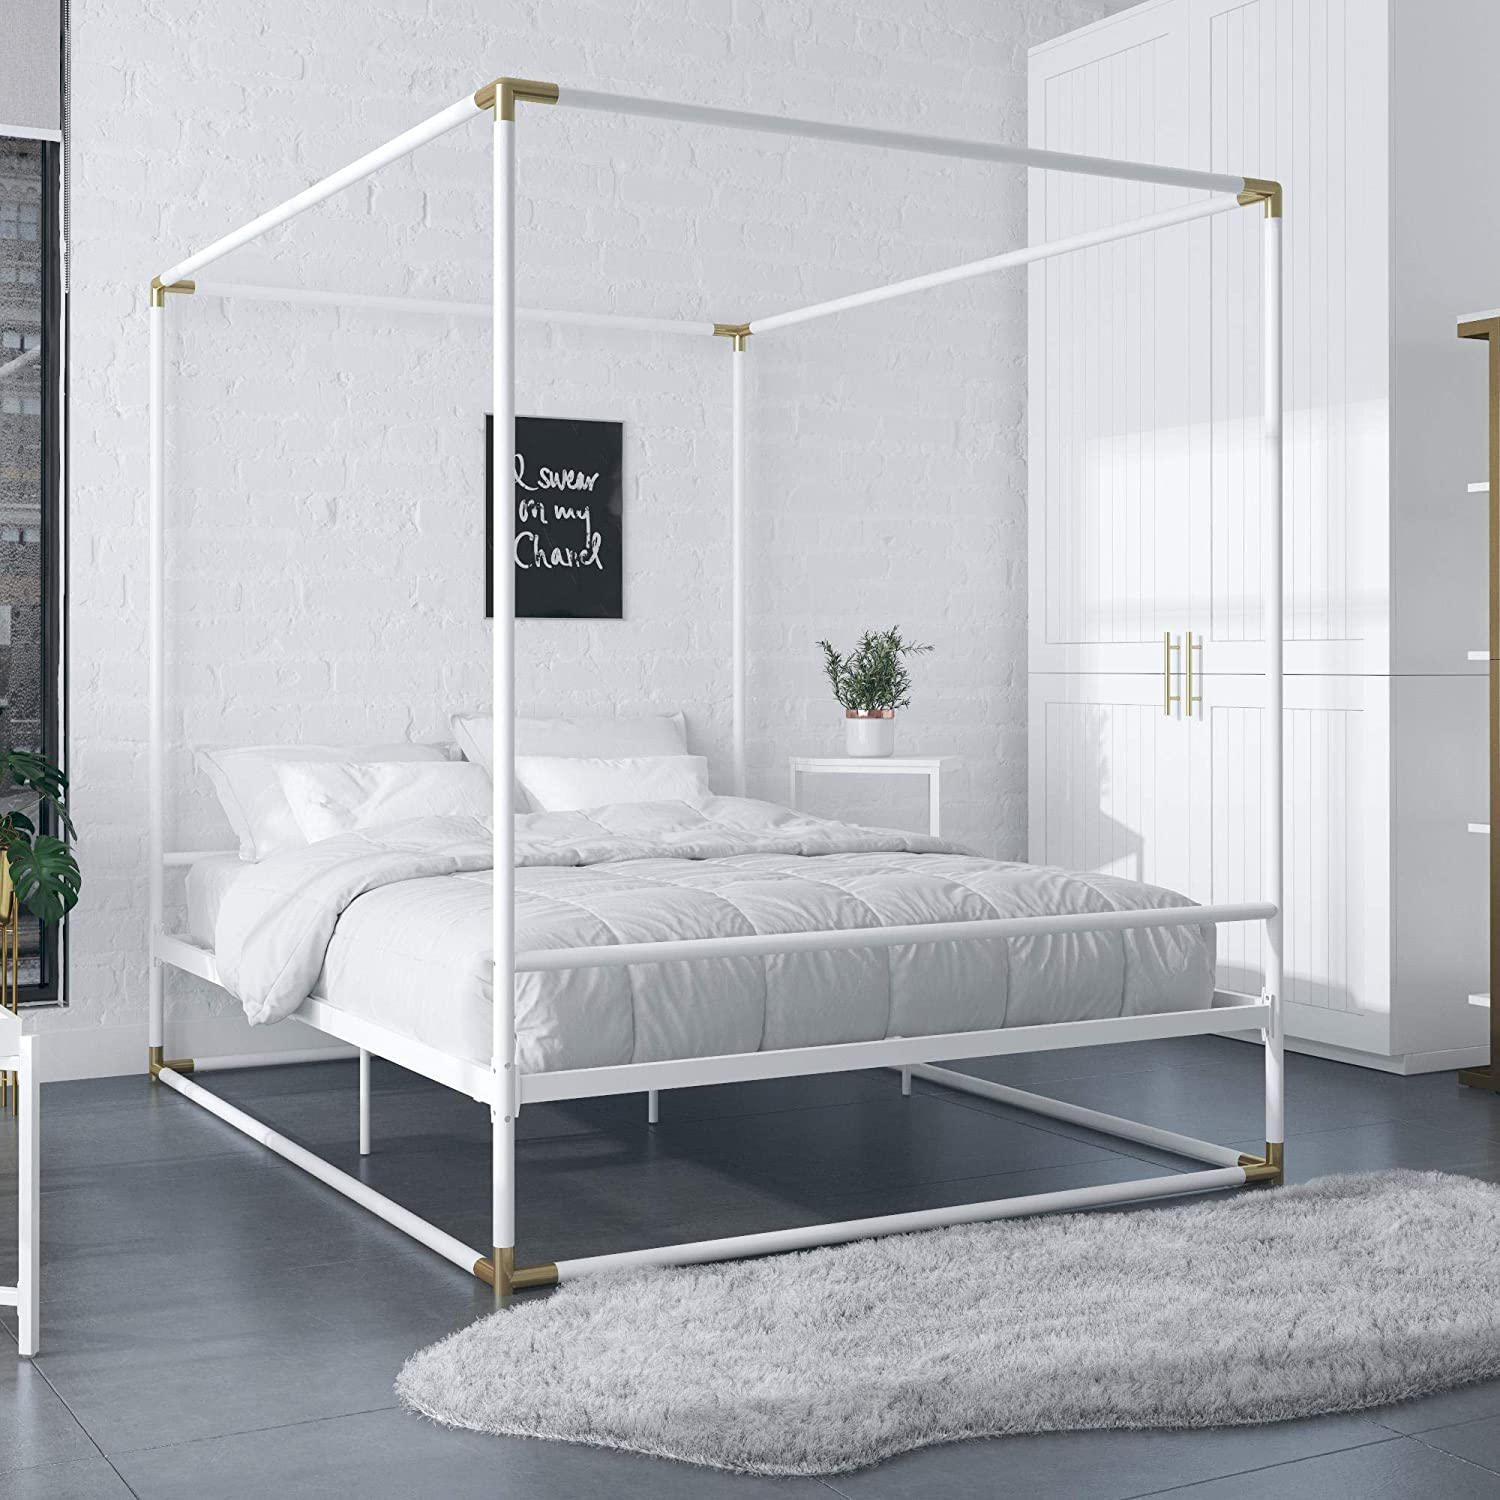 CosmoLiving by Cosmopolitan CosmoLiving Celeste Canopy Metal, Queen Size Frame, White/Gold Bed